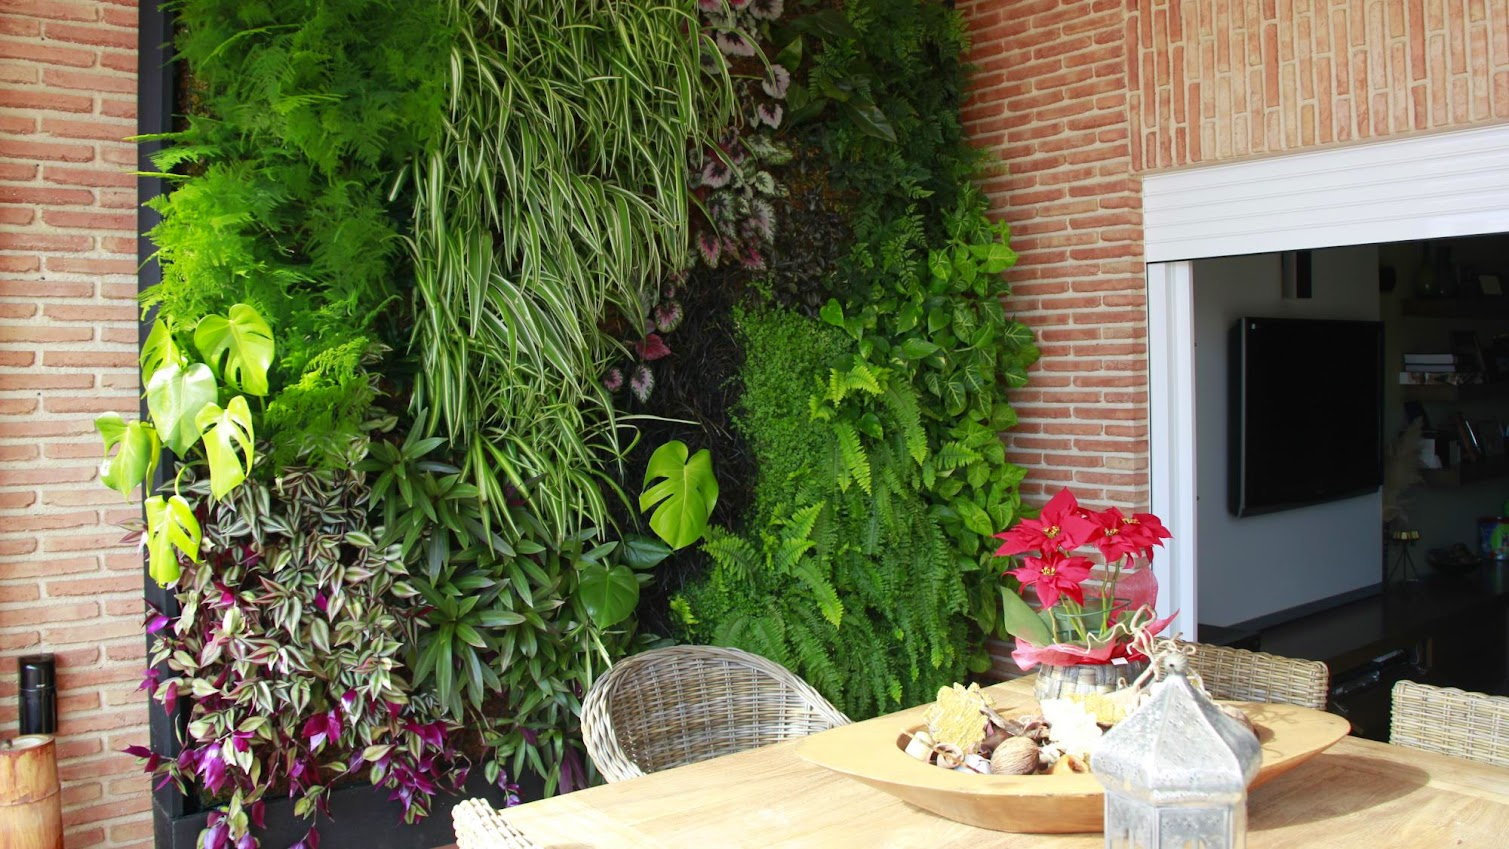 Los beneficios de un jard n vertical interior for Jardines verticales interiores